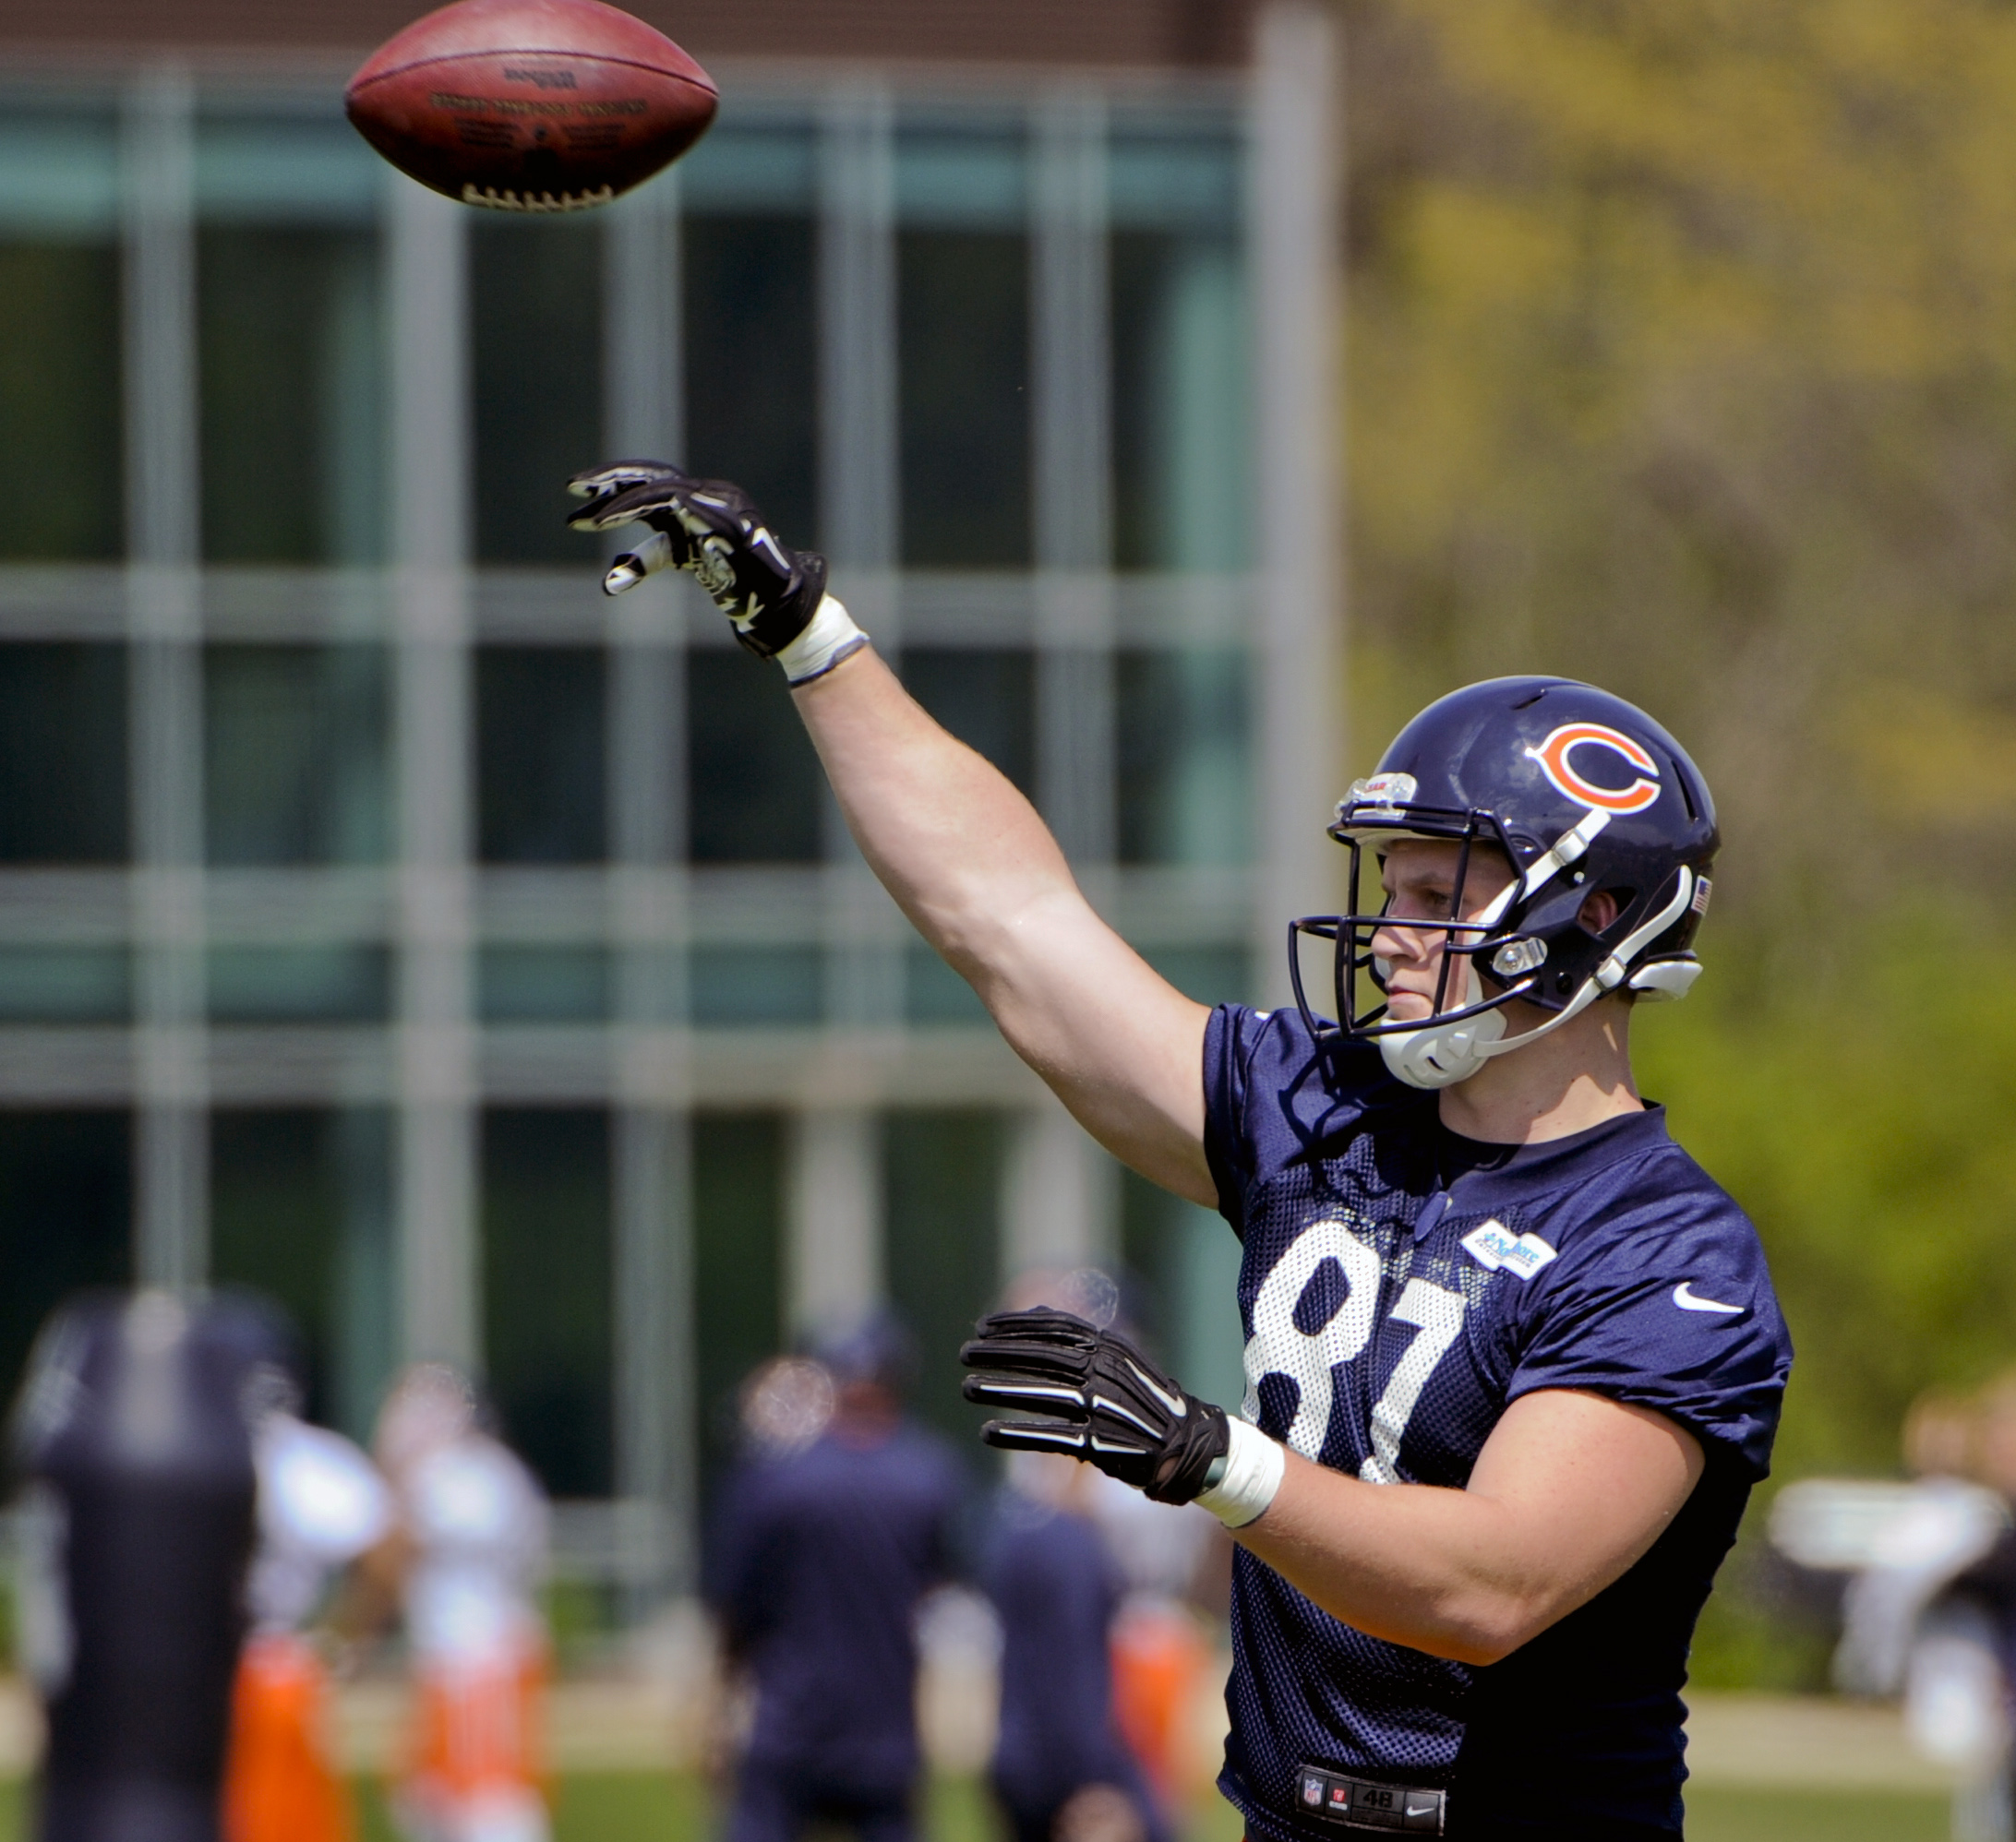 Chicago Bears Roster: Chicago Bears Wrap Up Rookie Camp